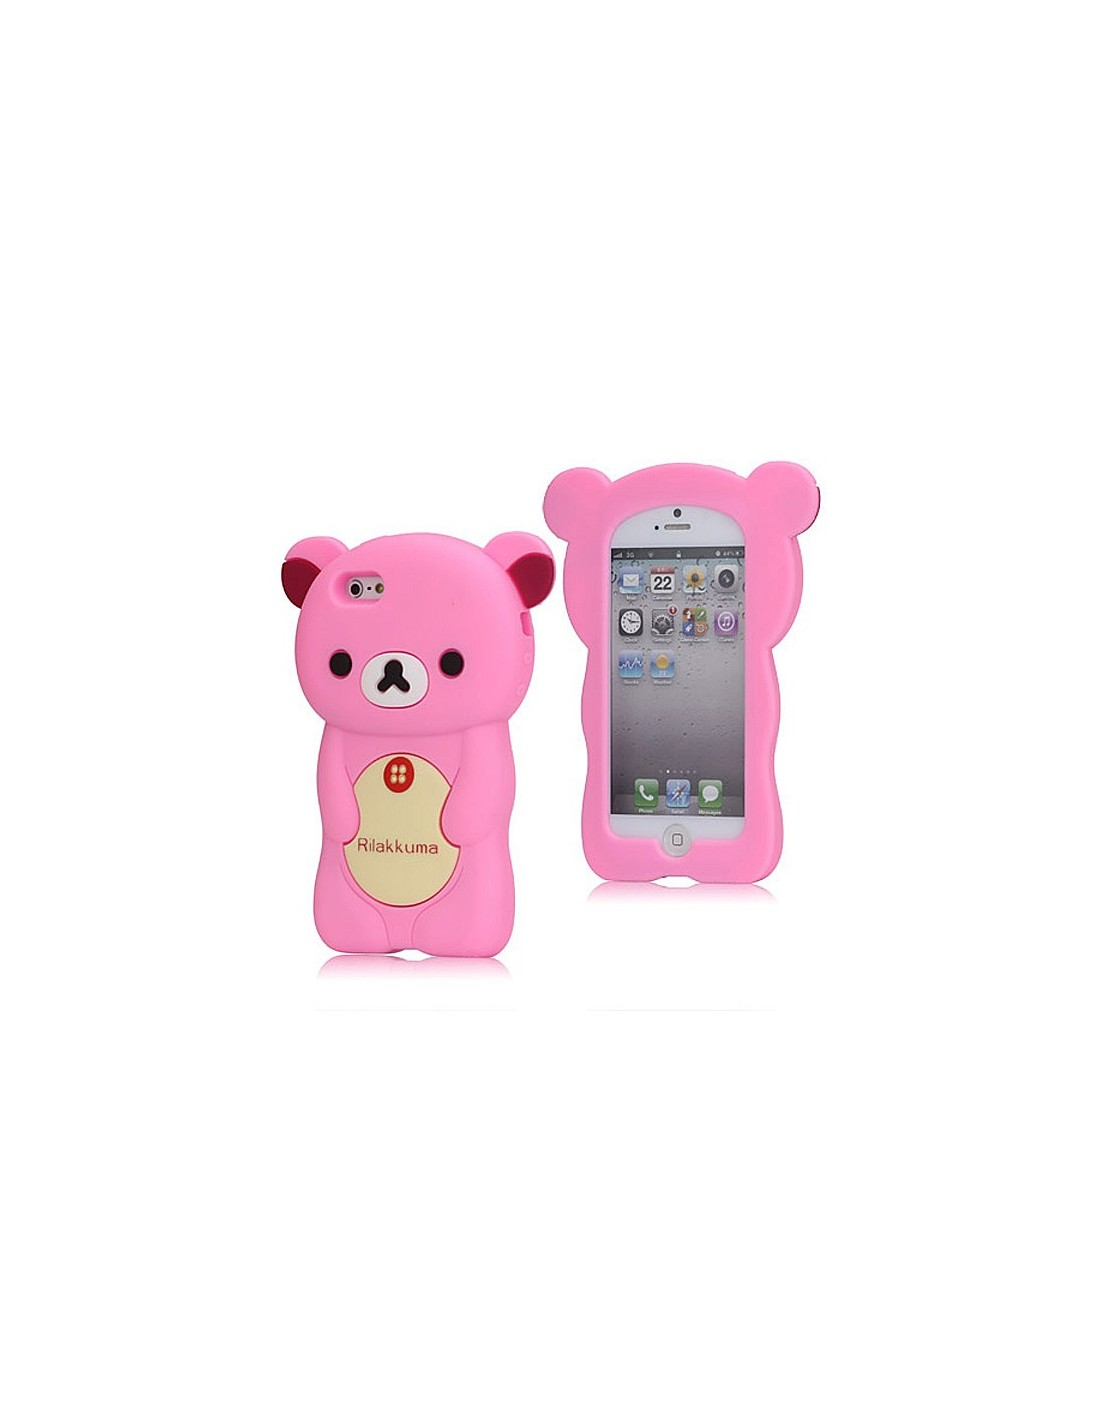 coque rilakkuma ourson pour iphone 5. Black Bedroom Furniture Sets. Home Design Ideas